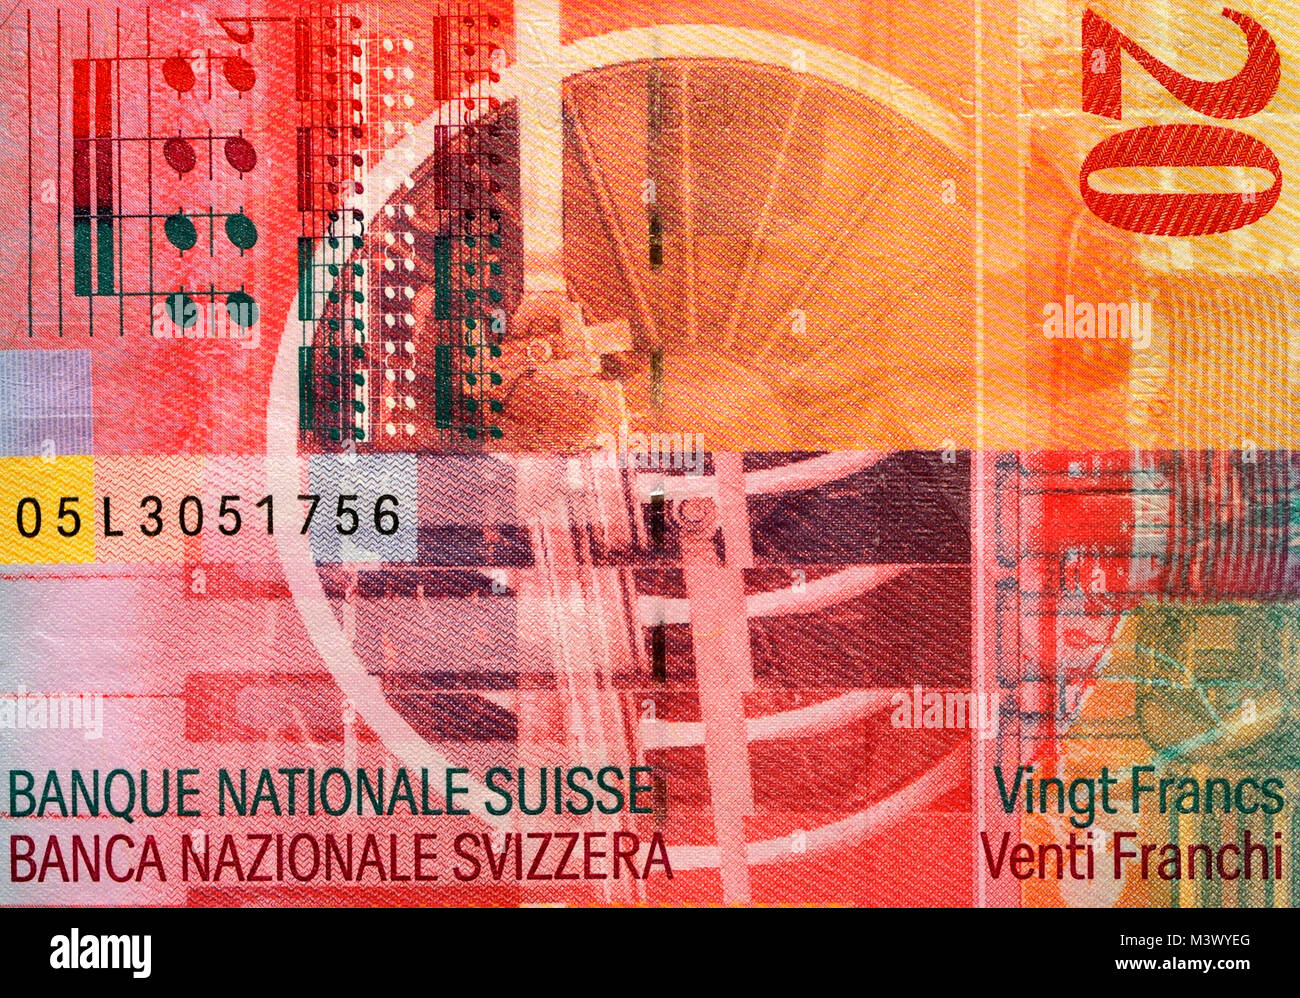 20 swiss franc stock photos 20 swiss franc stock images alamy switzerland 20 twenty swiss franc bank note stock image buycottarizona Images